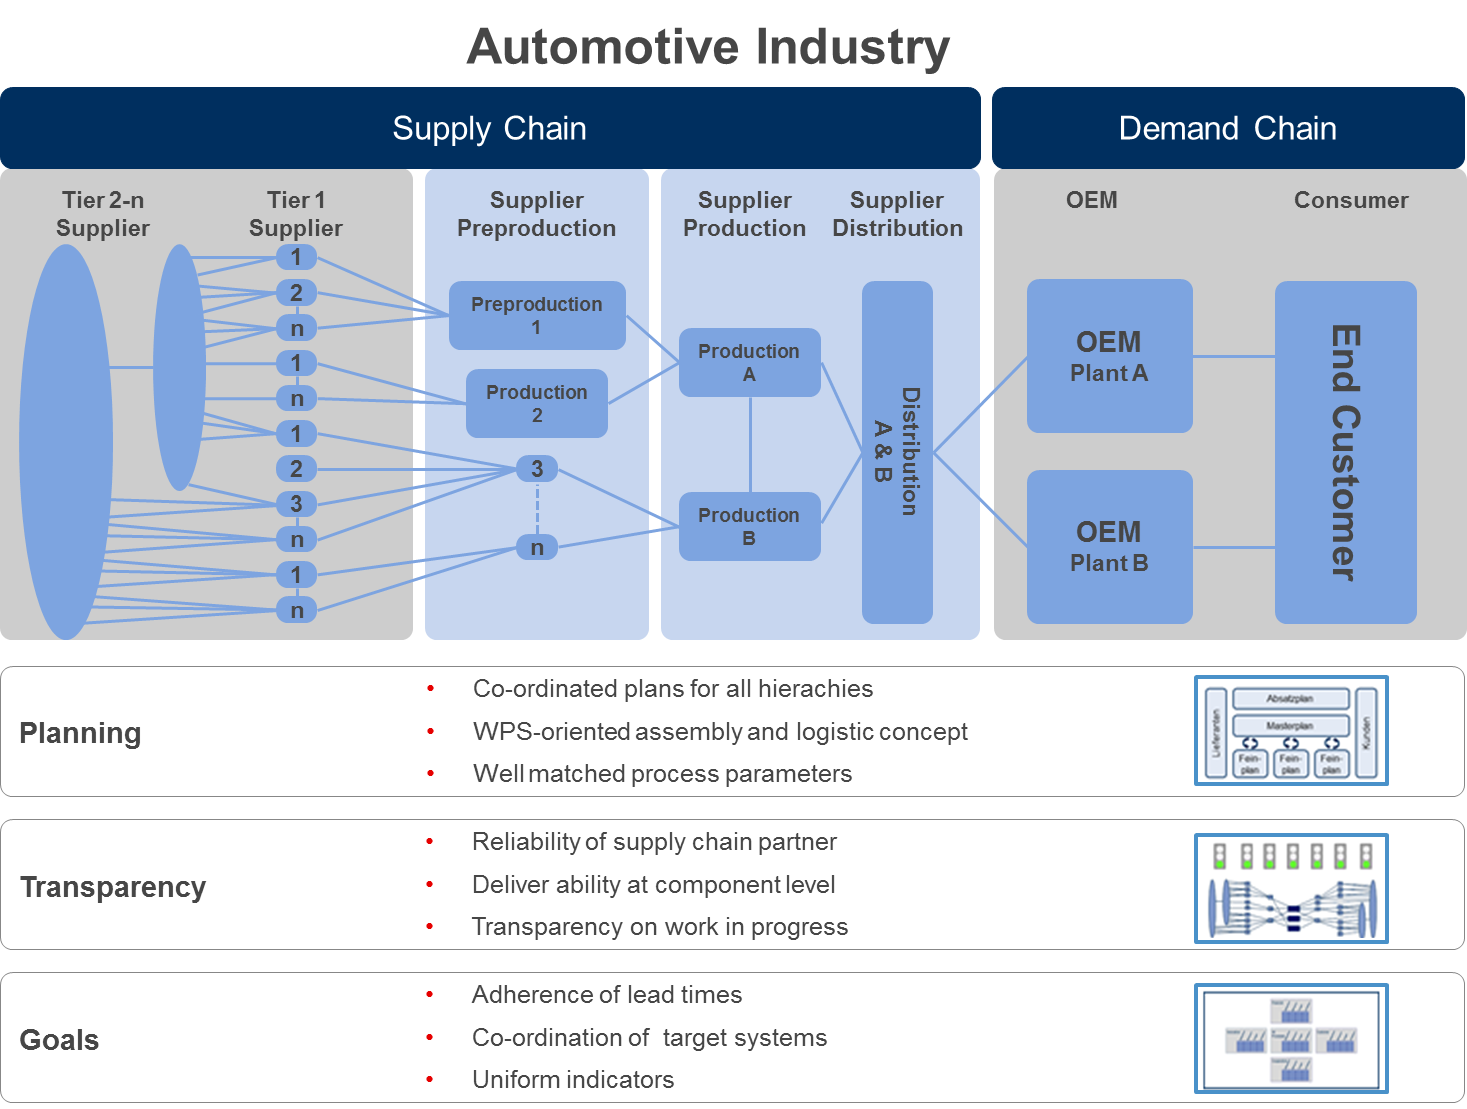 supply chain automotive industry Supply chain and logistics news capgemini said in a report on digital strategy for automotive suppliers that tier 1 needs to acquire digital mastery and innovate to maximize their bottom line.